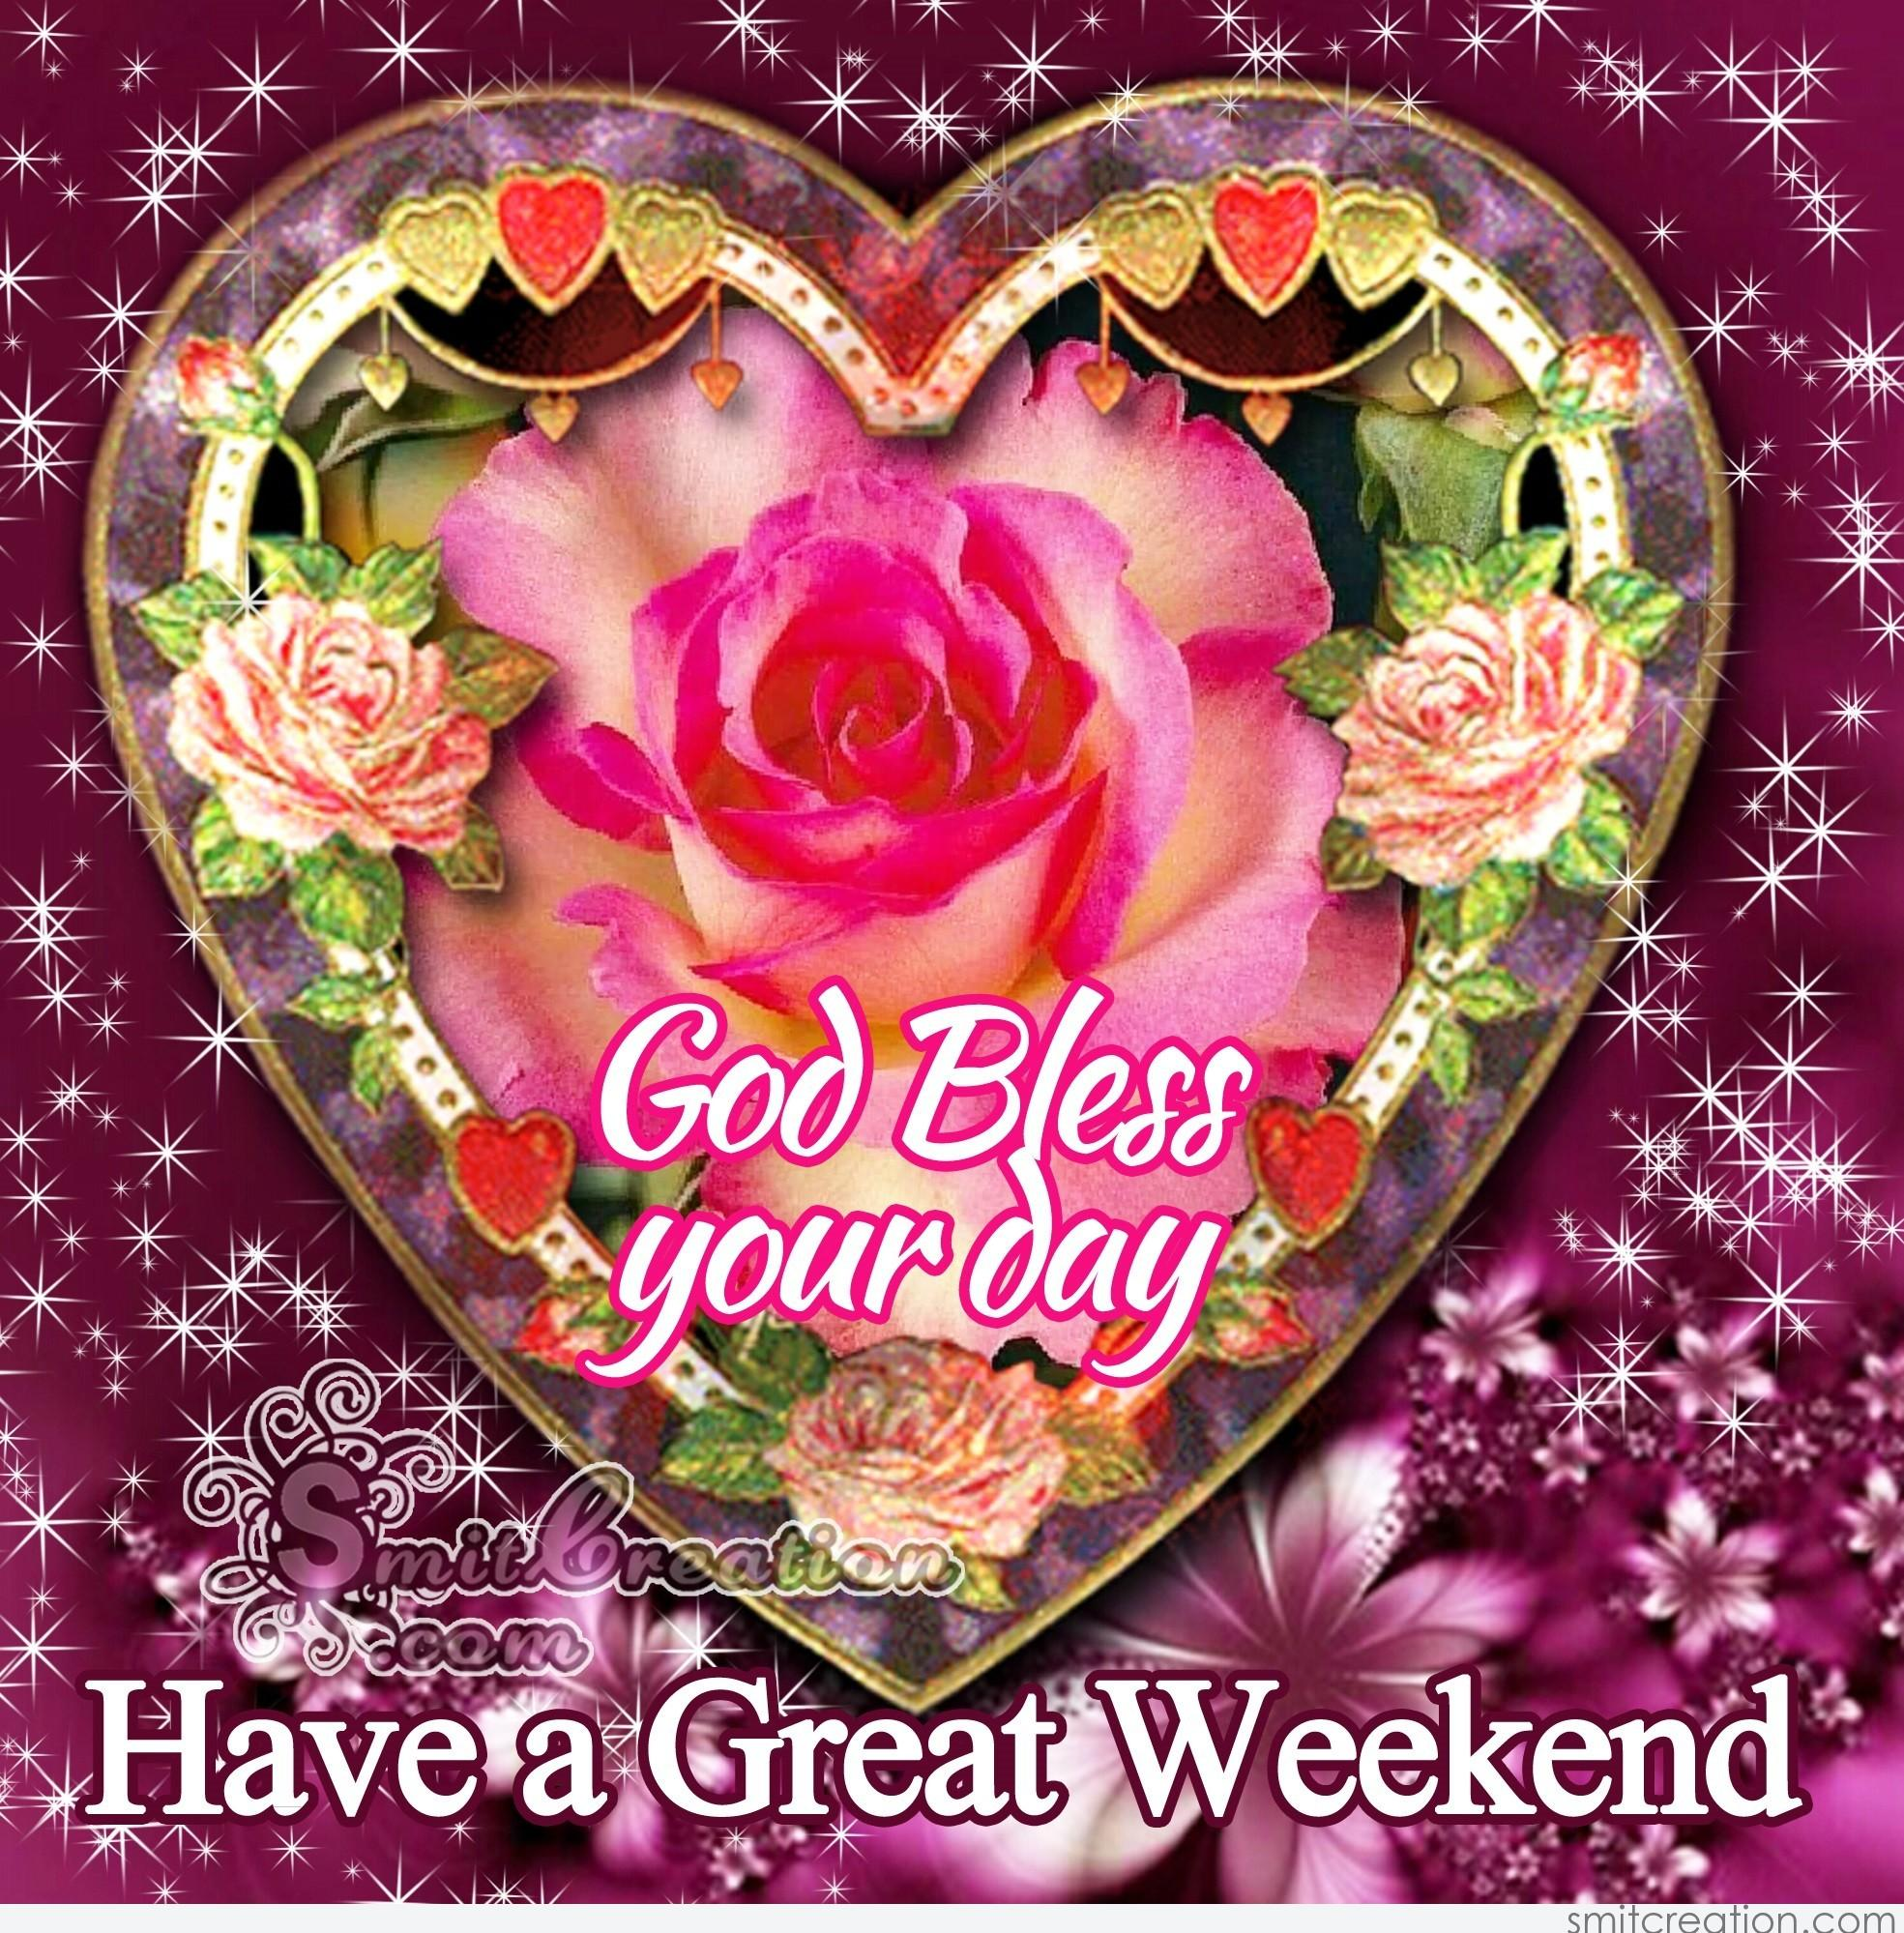 God Bless Your Day Have a Great Weekend - SmitCreation.com